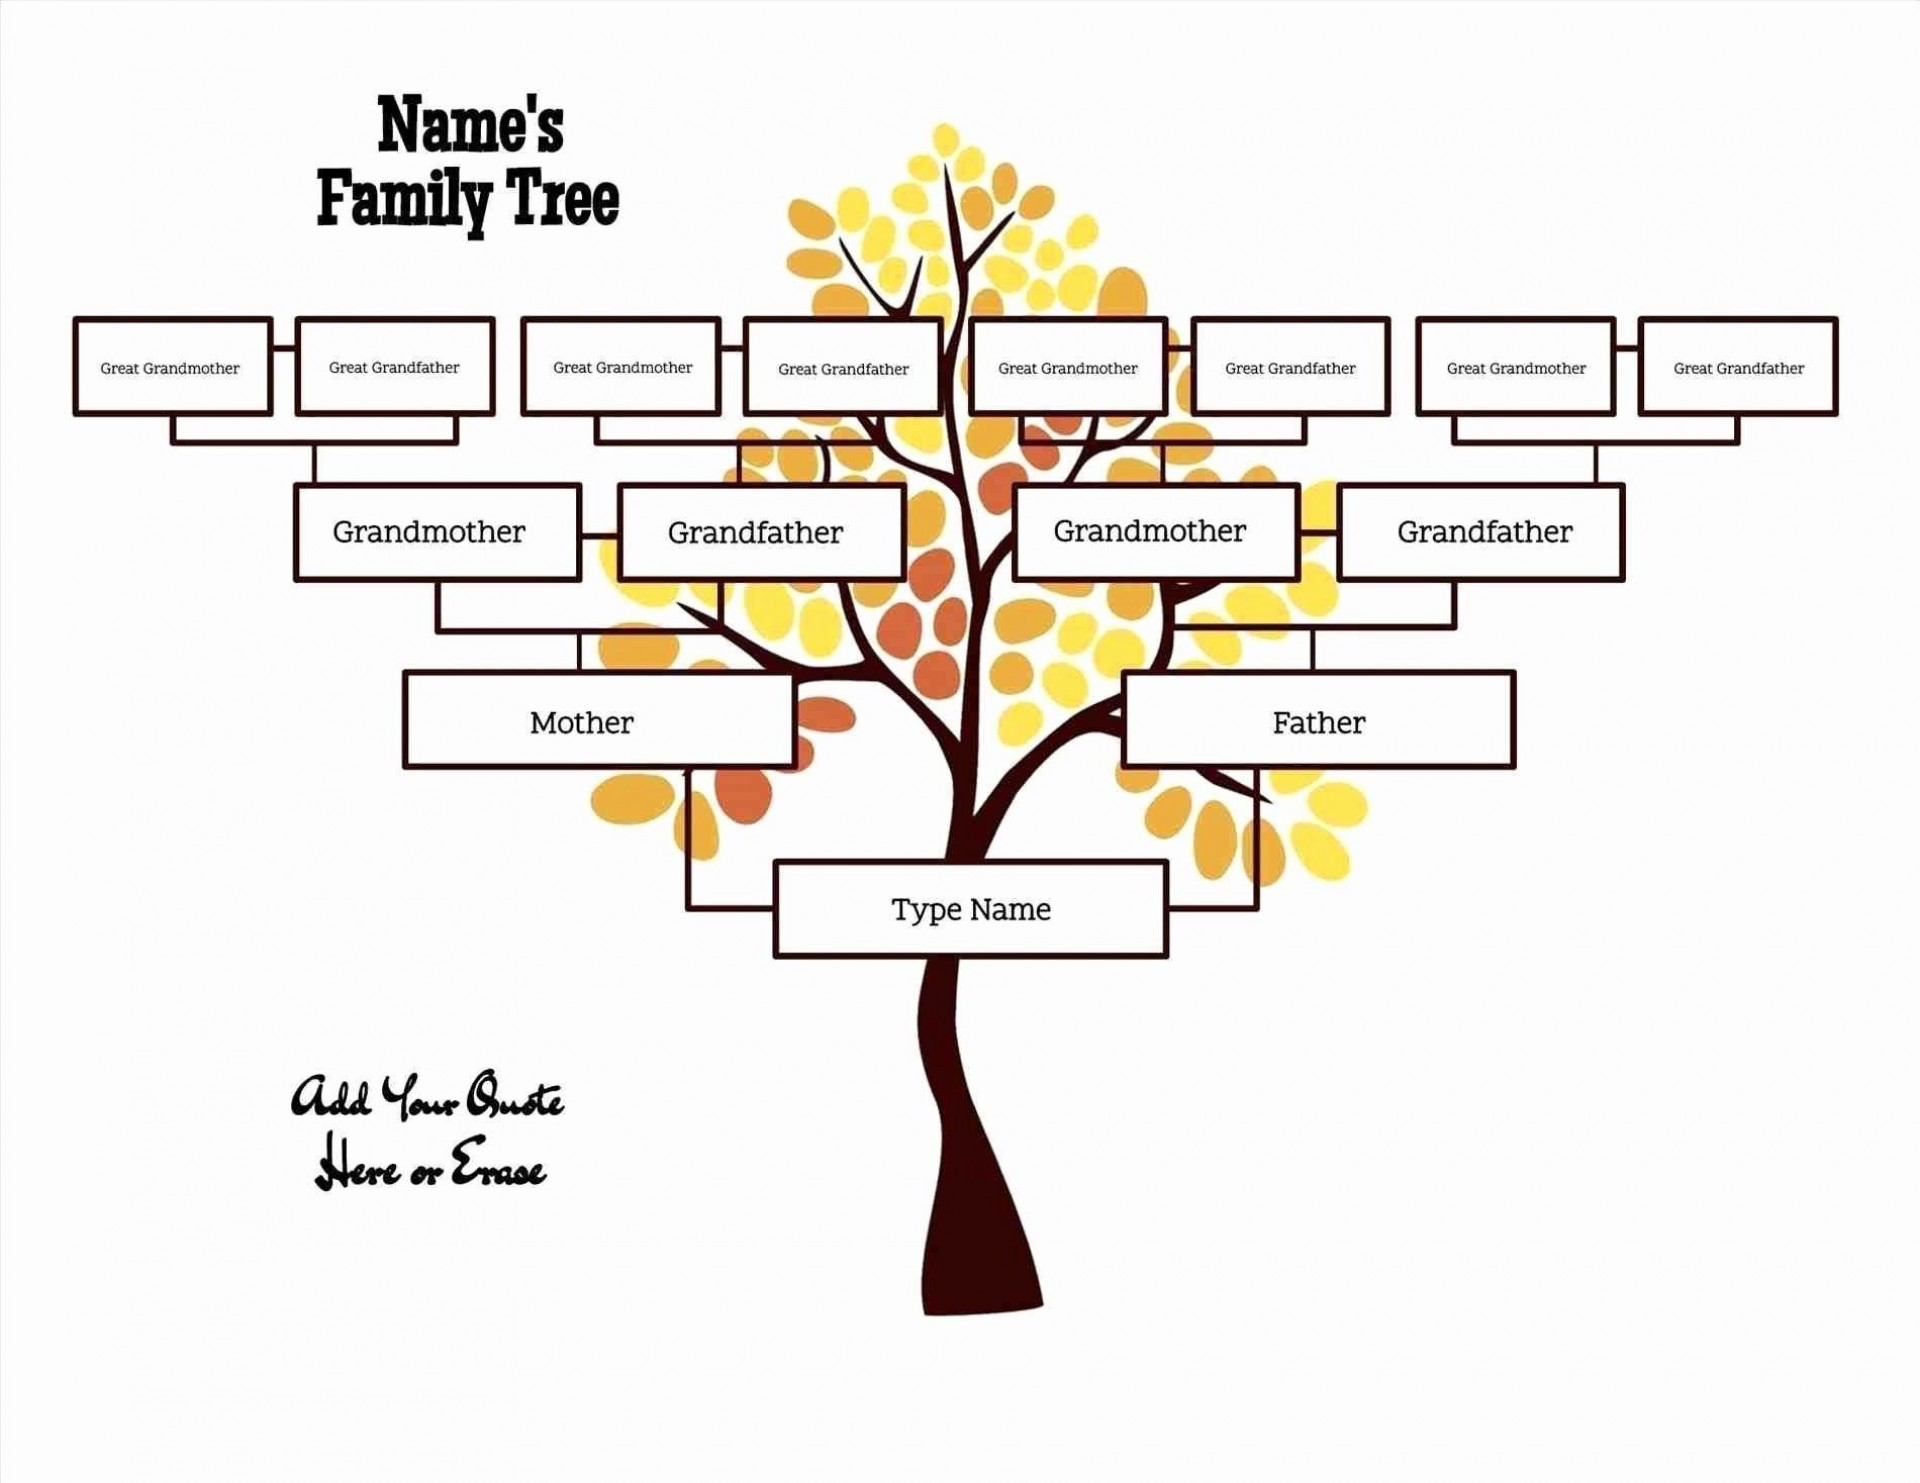 010 Wonderful Free Editable Family Tree Template For Mac Concept 1920